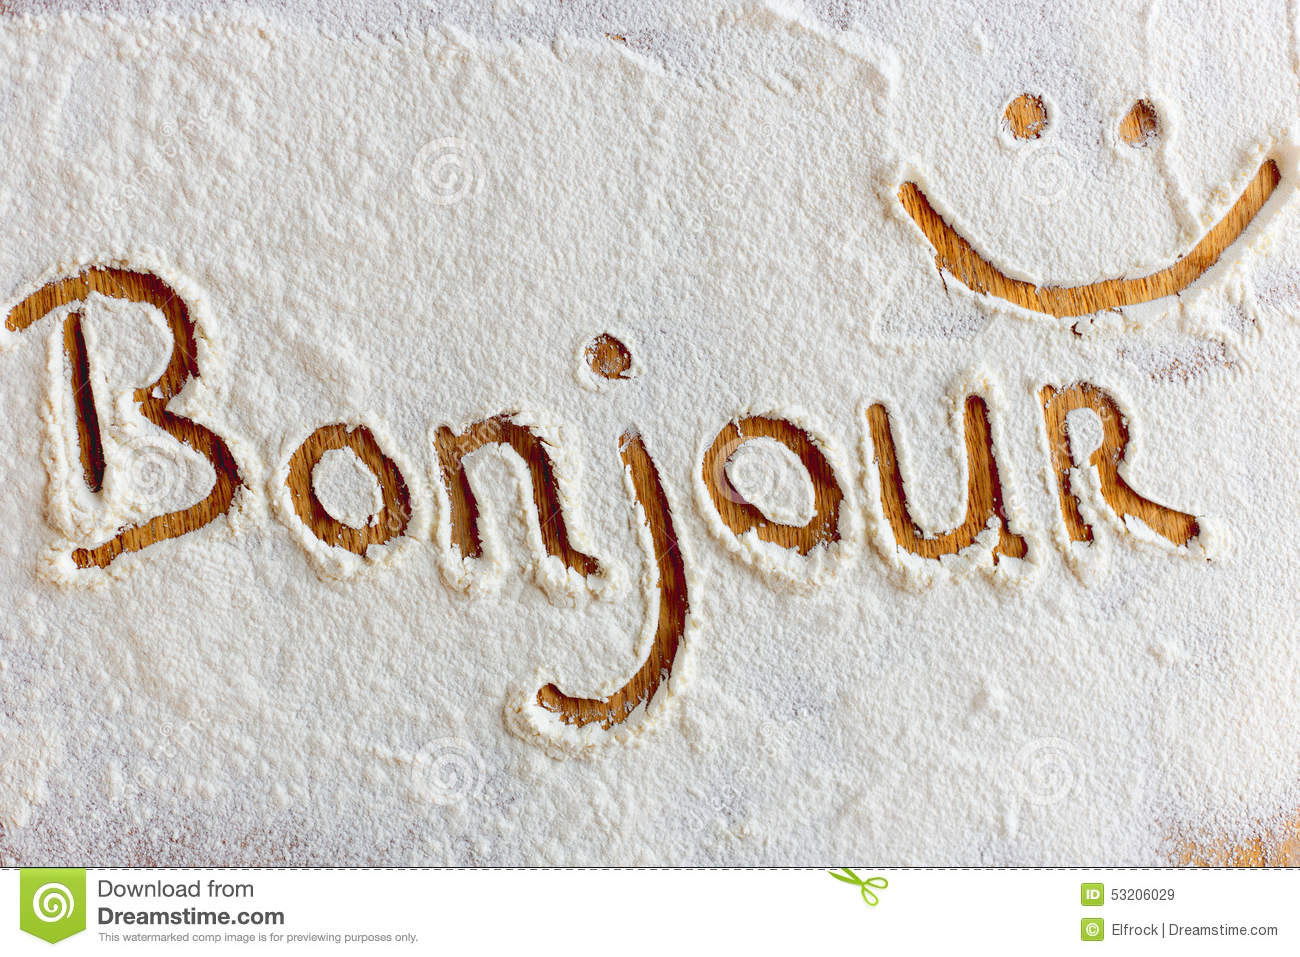 about bonjour Bonjour technology runs based on tcp/ip, enabling you to automatically  configure the network settings for networked devices and find available services.